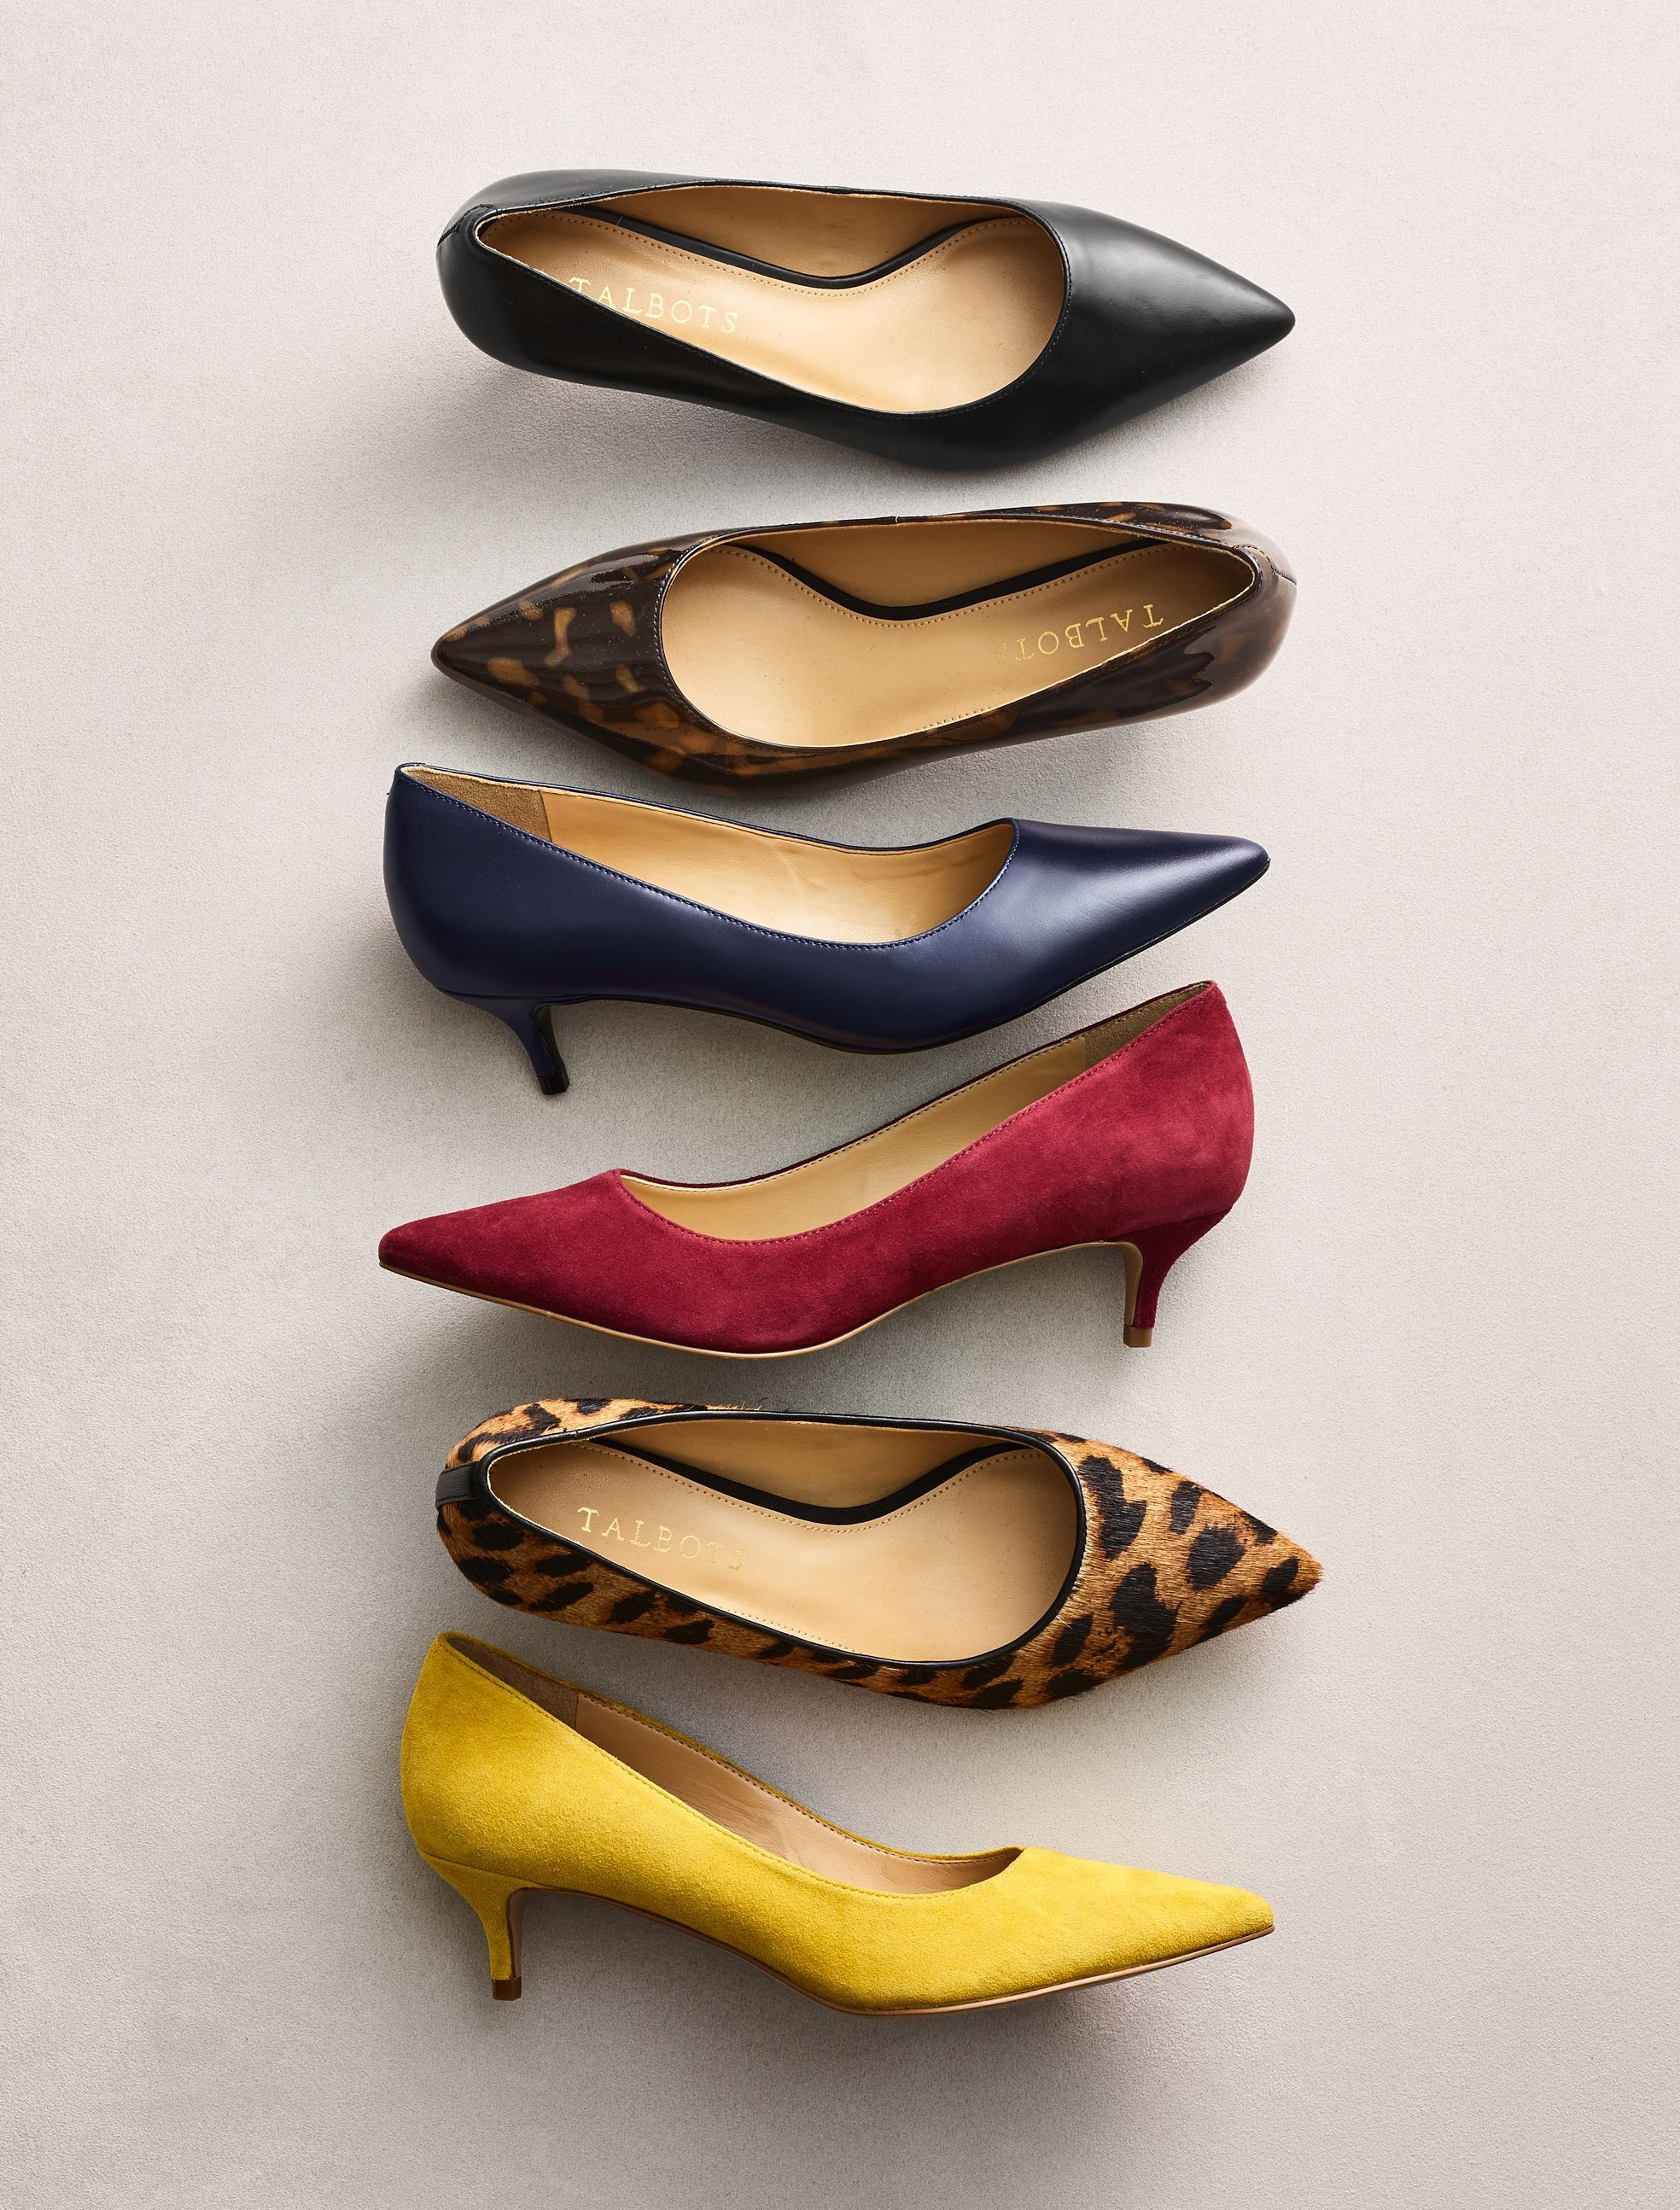 Plush Suede Pumps In Vibrant Hues With A Classic Kitten Heel Fashioned With Cushy Memory Foam Footbeds And Finished Wit Womens Fashion Shoes Pumps Heels Heels